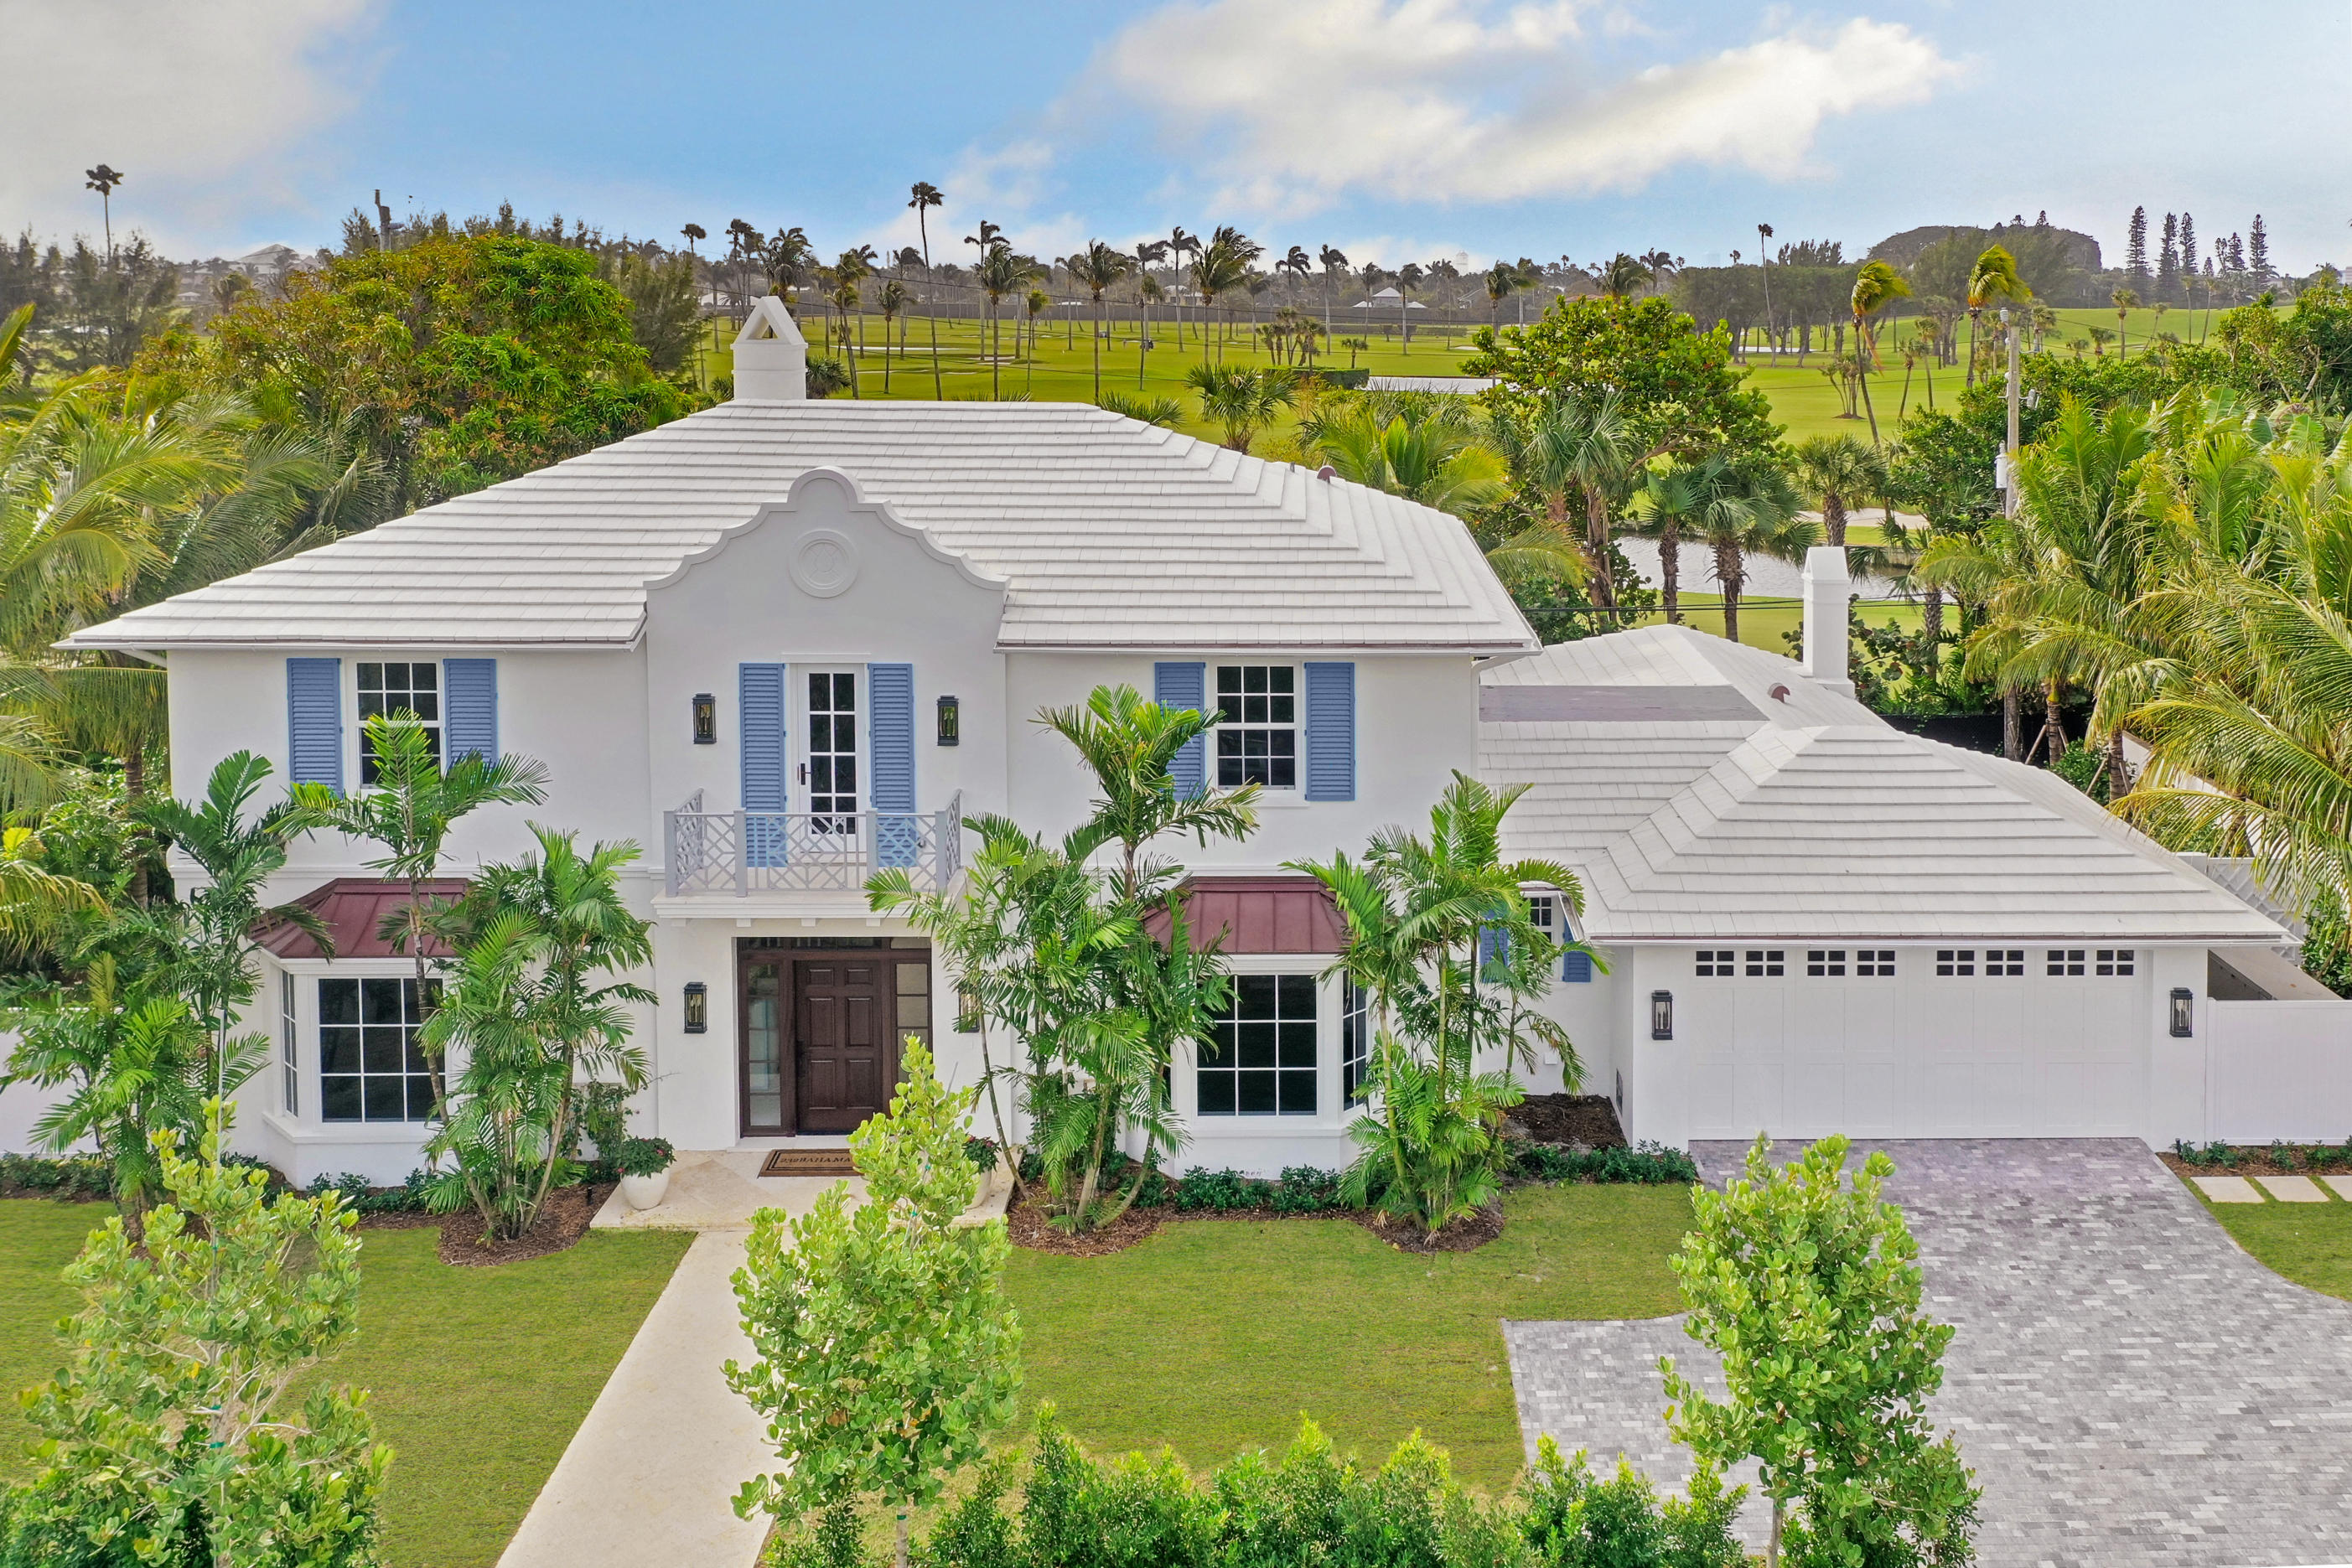 Just finished - this is a spectacular custom home designed and built by esteemed  Palm Beach Designer Lisa Erdmann who attended to every detail. Situated on a south facing home site overlooking the PB Country Club golf course and its waterways - breathtaking vistas from both first and second floors with ample privacy and ocean breezes as this home is steps to the beach and the bike trail. Four bedrooms with a large master featuring his and her baths with spacious closets for each. Formal dining - outdoor dining and fireplace with a lap pool along the golf course. This home is NOT the standard PB spec home - it features luxurious marbles, upscale hardwood flooring, quality lighting already installed and generous use of moldings and ceiling treatments. There is no other home with views and features like this brand new custom home offers. See the rest  then come visit this one and you'll agree  no comparison.